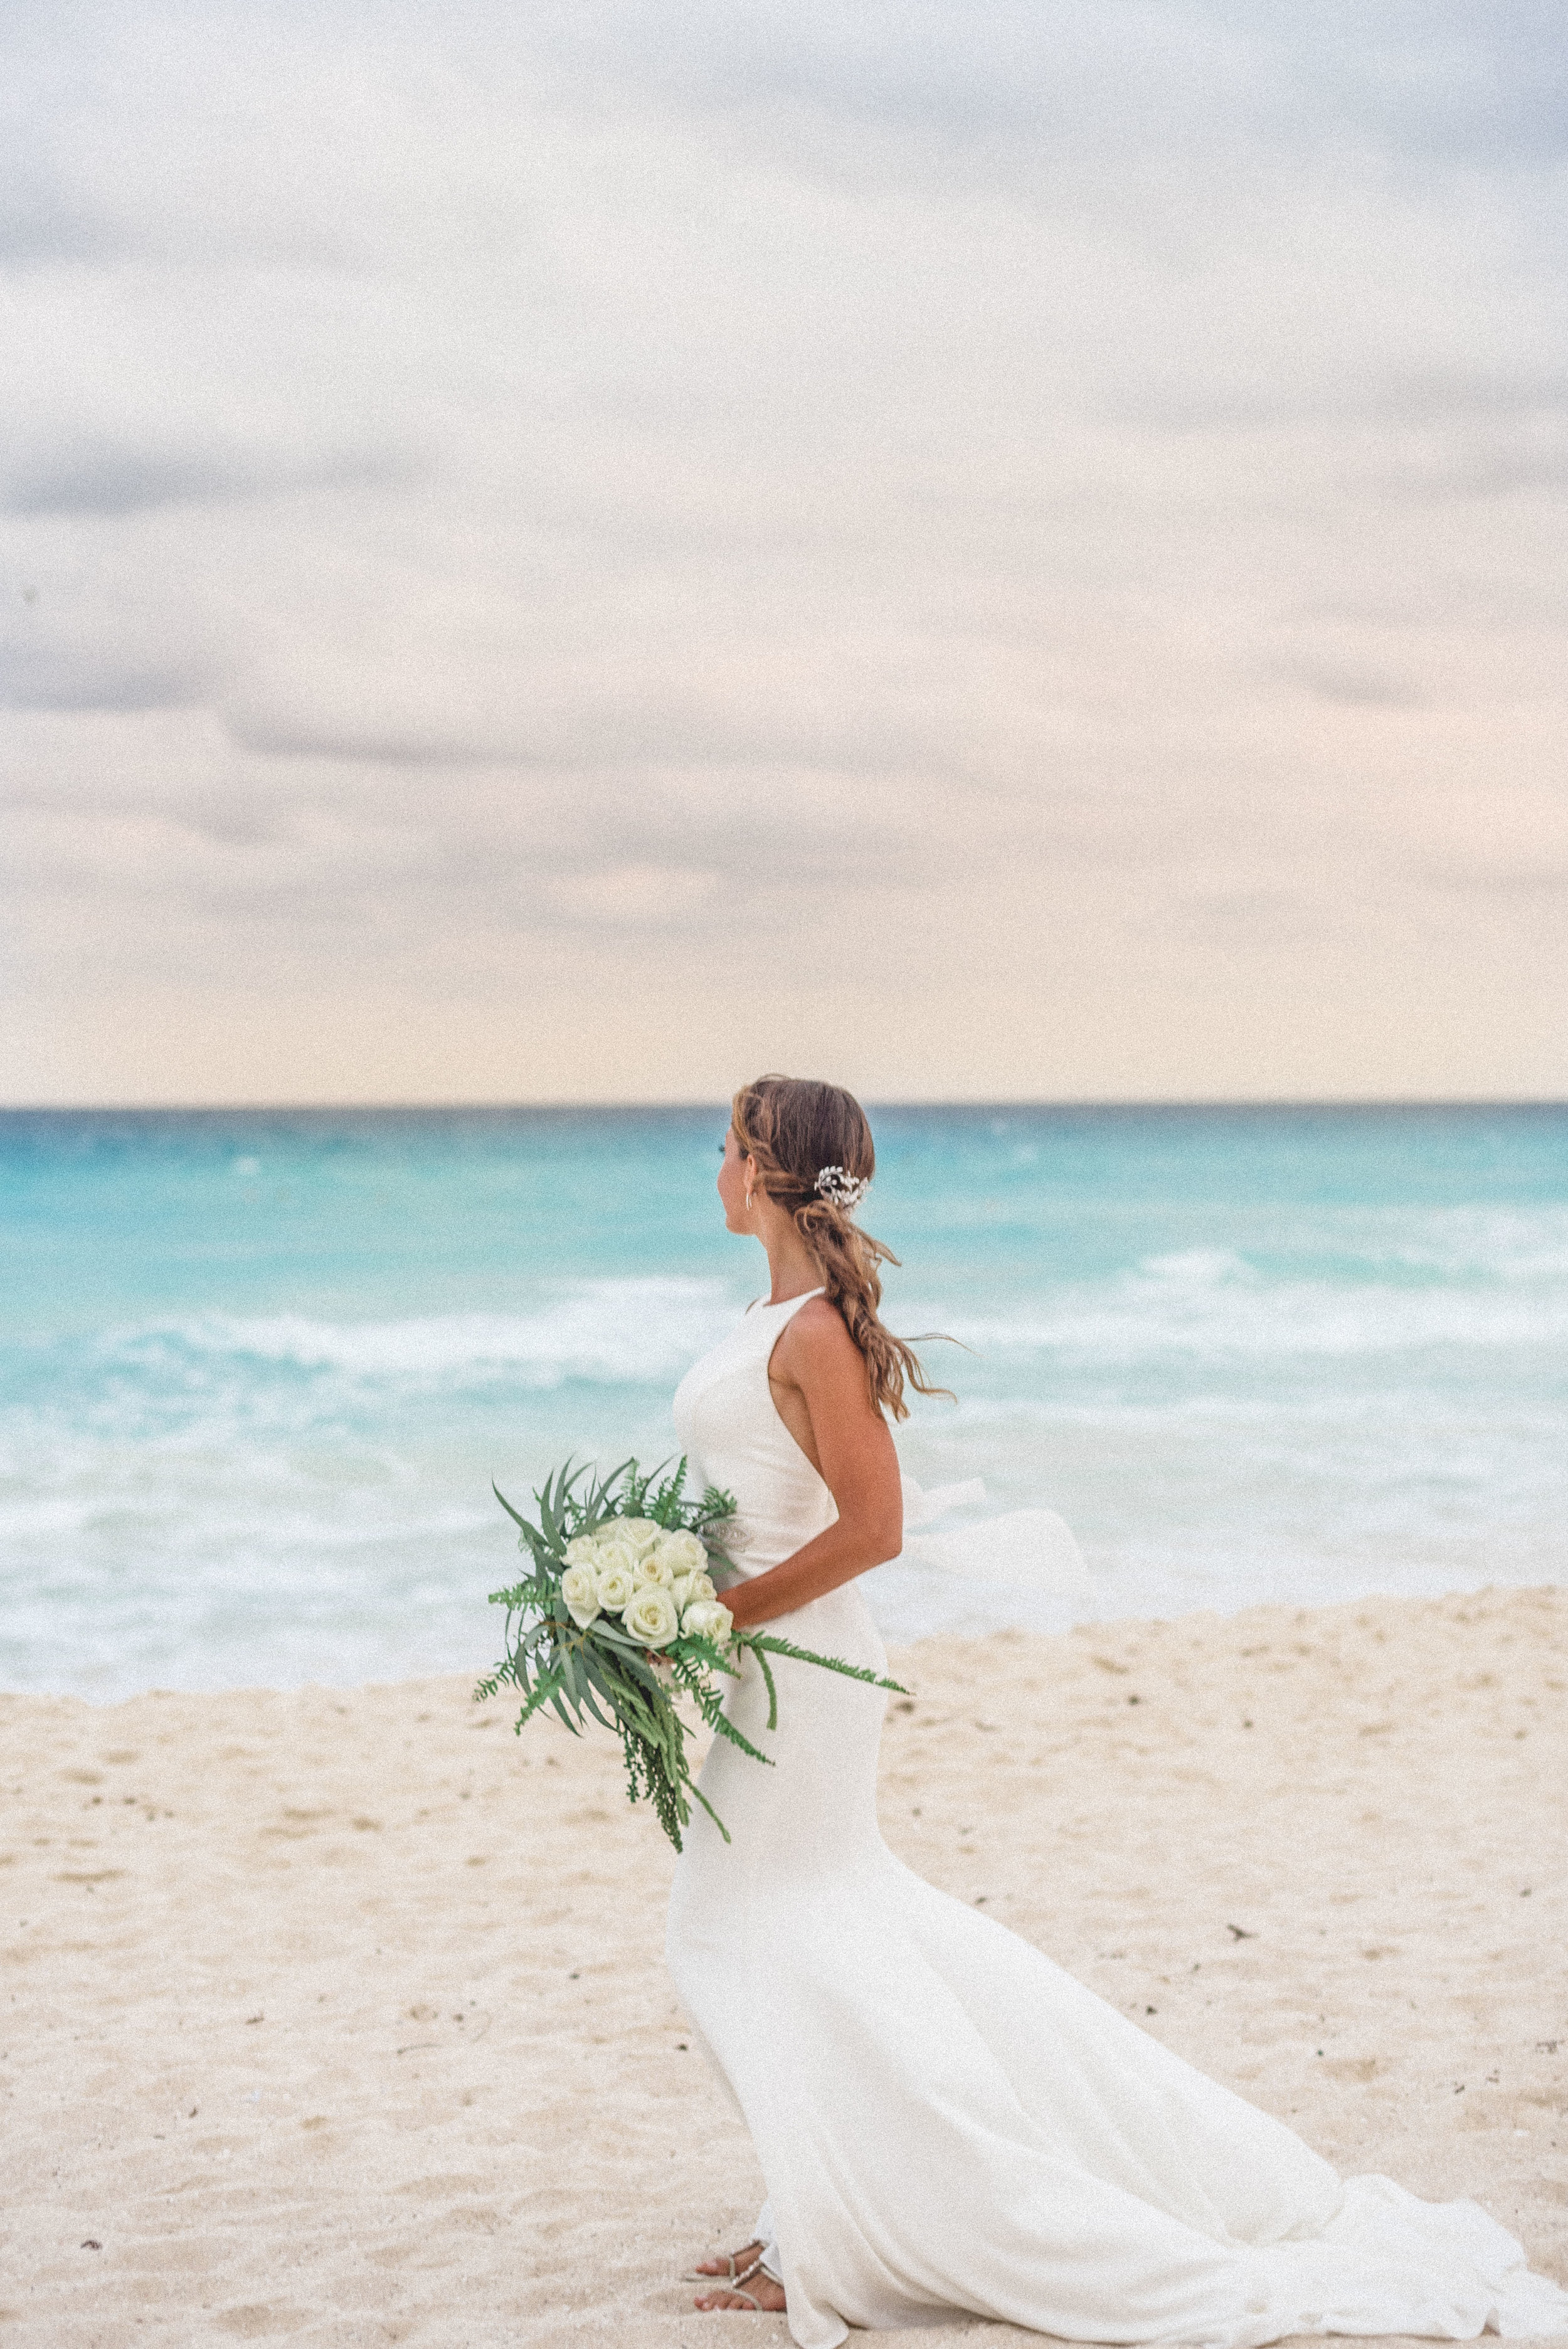 sayulita_mexico_wedding_bride-3.jpg